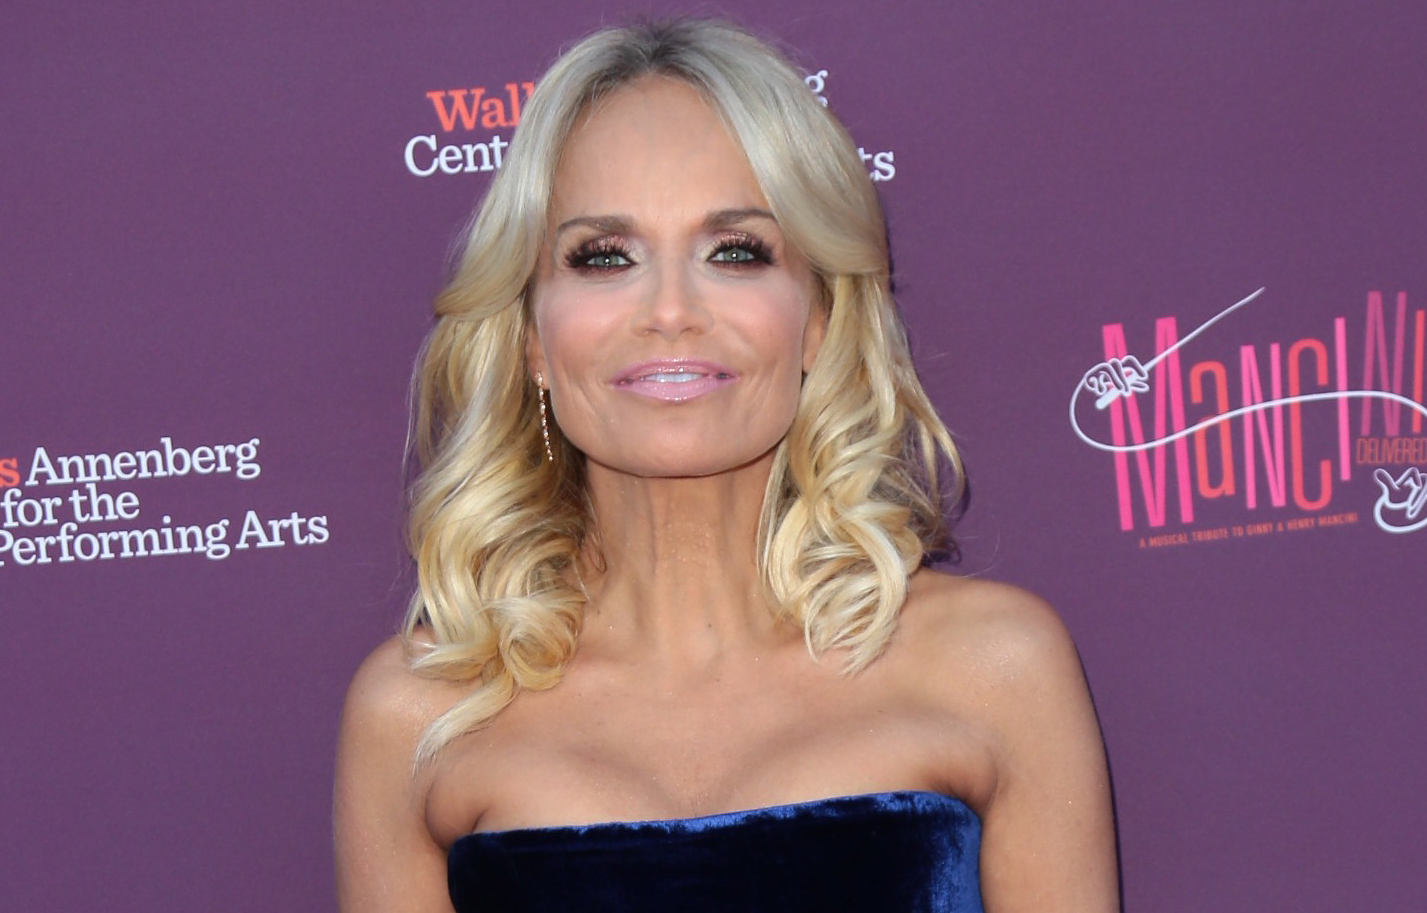 Kristin Chenoweth Announces Break From Show Business ... K Michelle And Joseline Hernandez